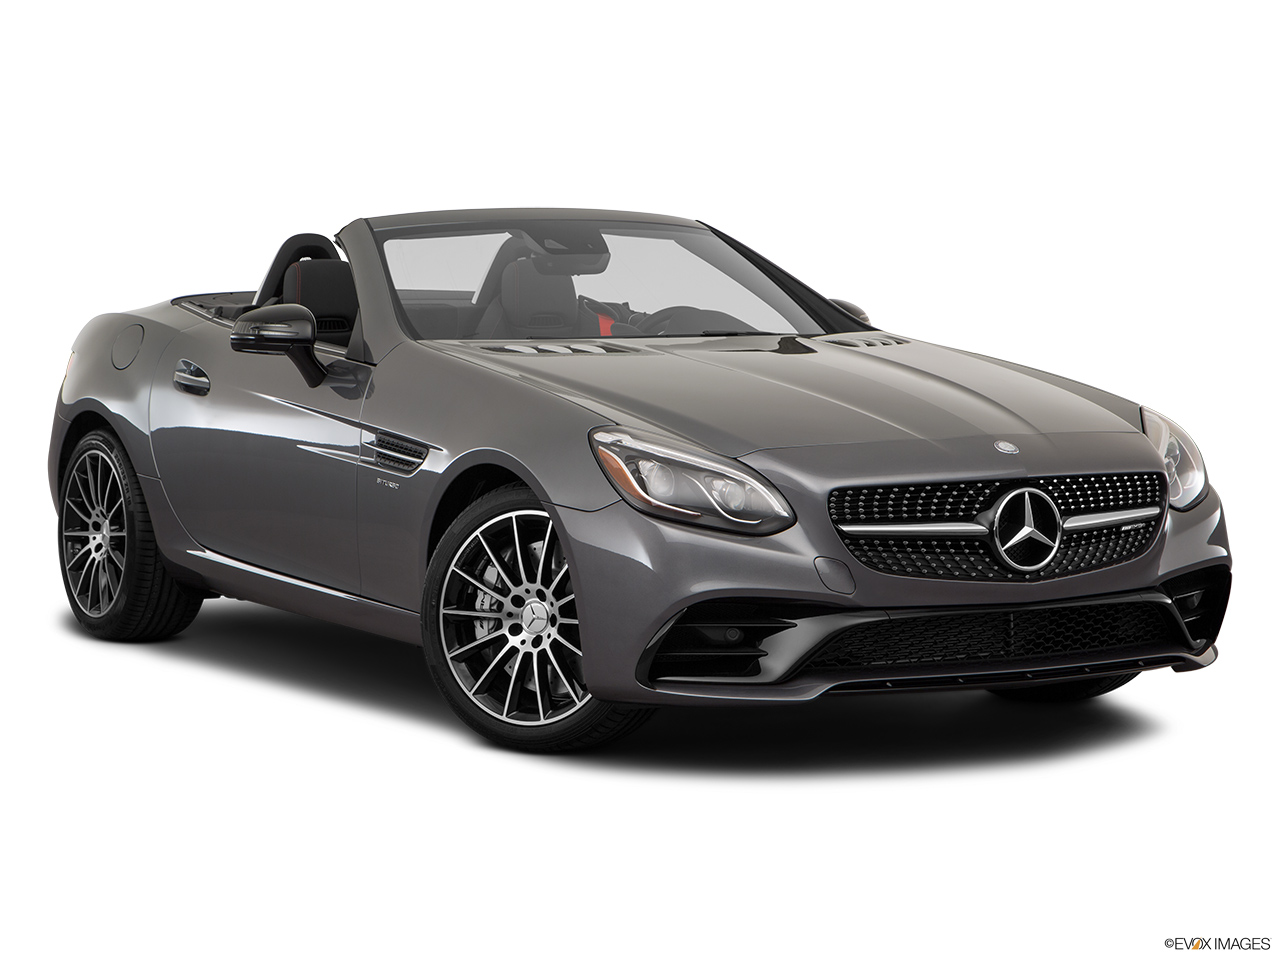 2019 Mercedes-Benz SLC-class SLC43 AMG Front passenger 3/4 w/ wheels turned.